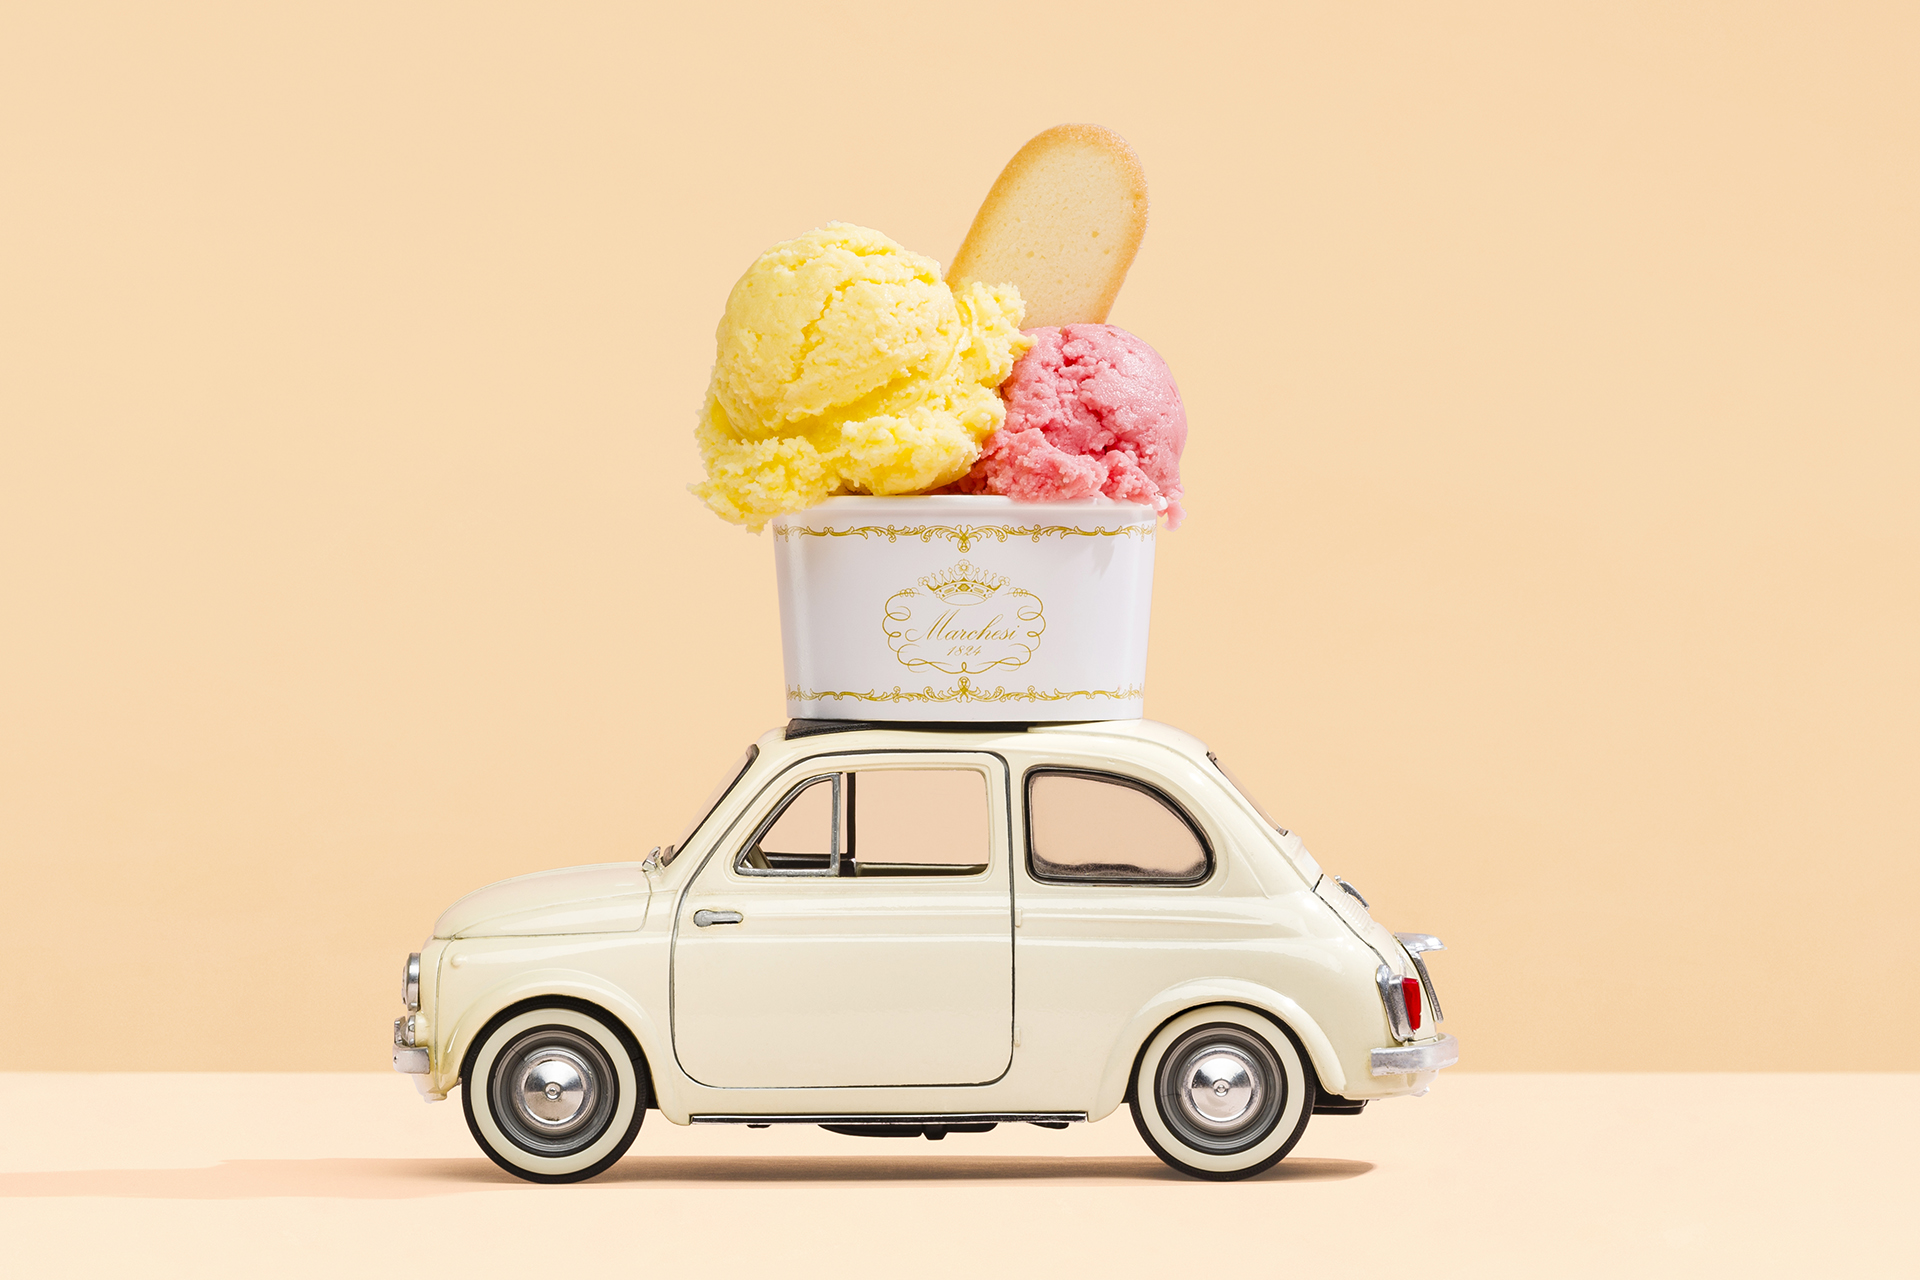 Simple, refreshing, artisanal: gelato